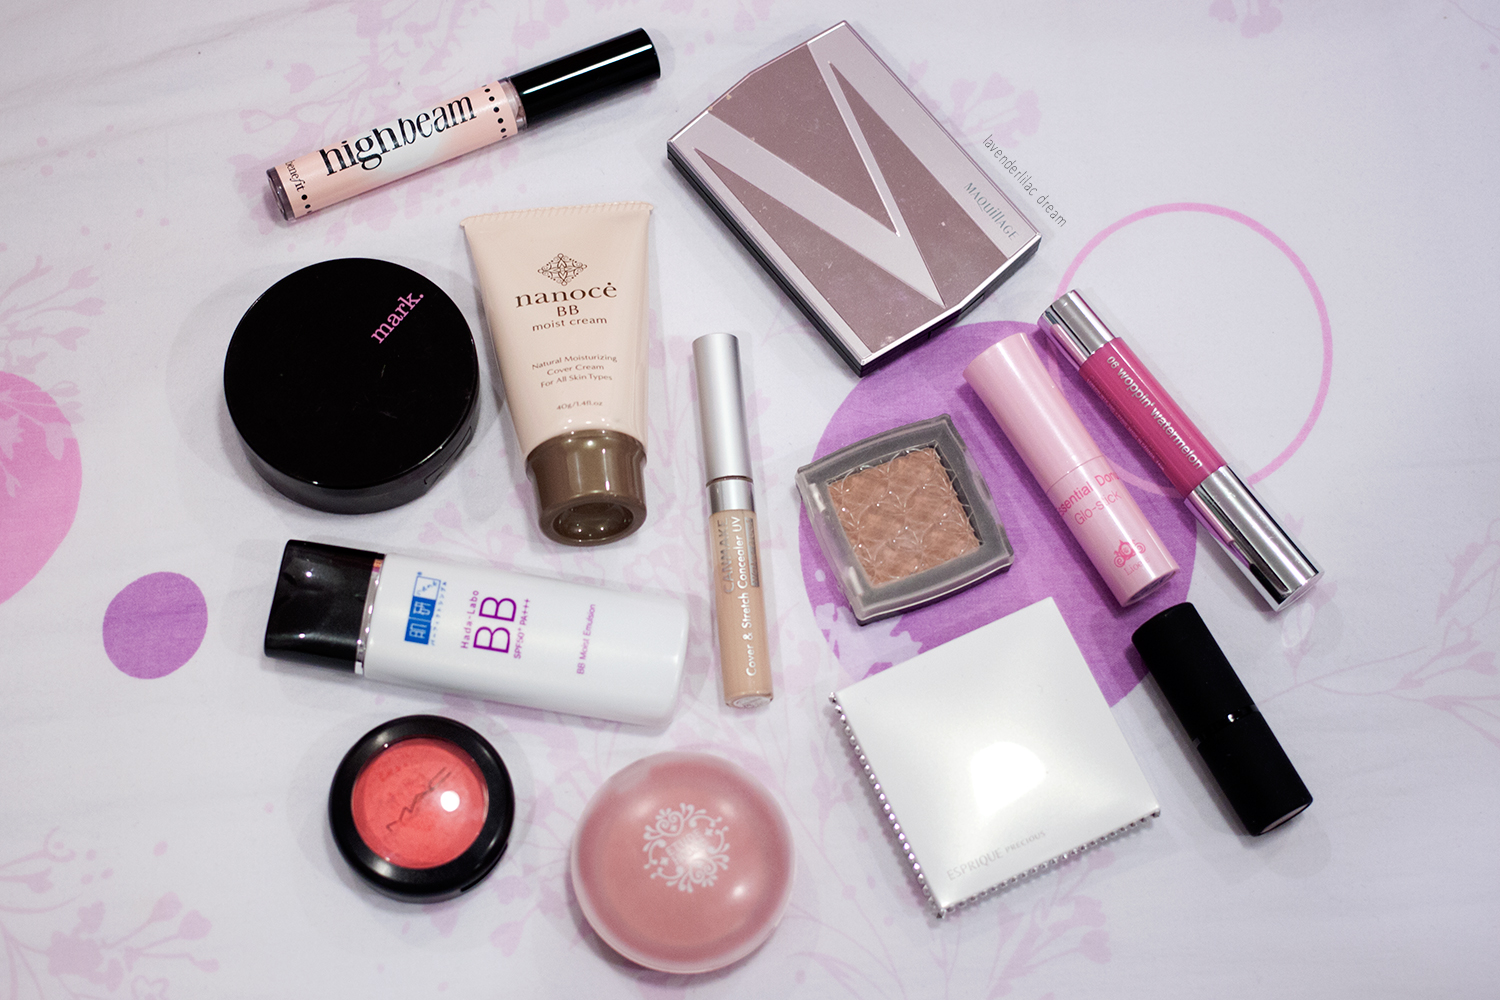 Project Make a Dent, Benefit highlight, Nanoce BB Cream, Hada Labo BB Cream, MAC Cream Colour, Etude House blush and bronzer, Esprique Precious palette, Maquillage palette, Lioele lip balm, Clinique chubby stick